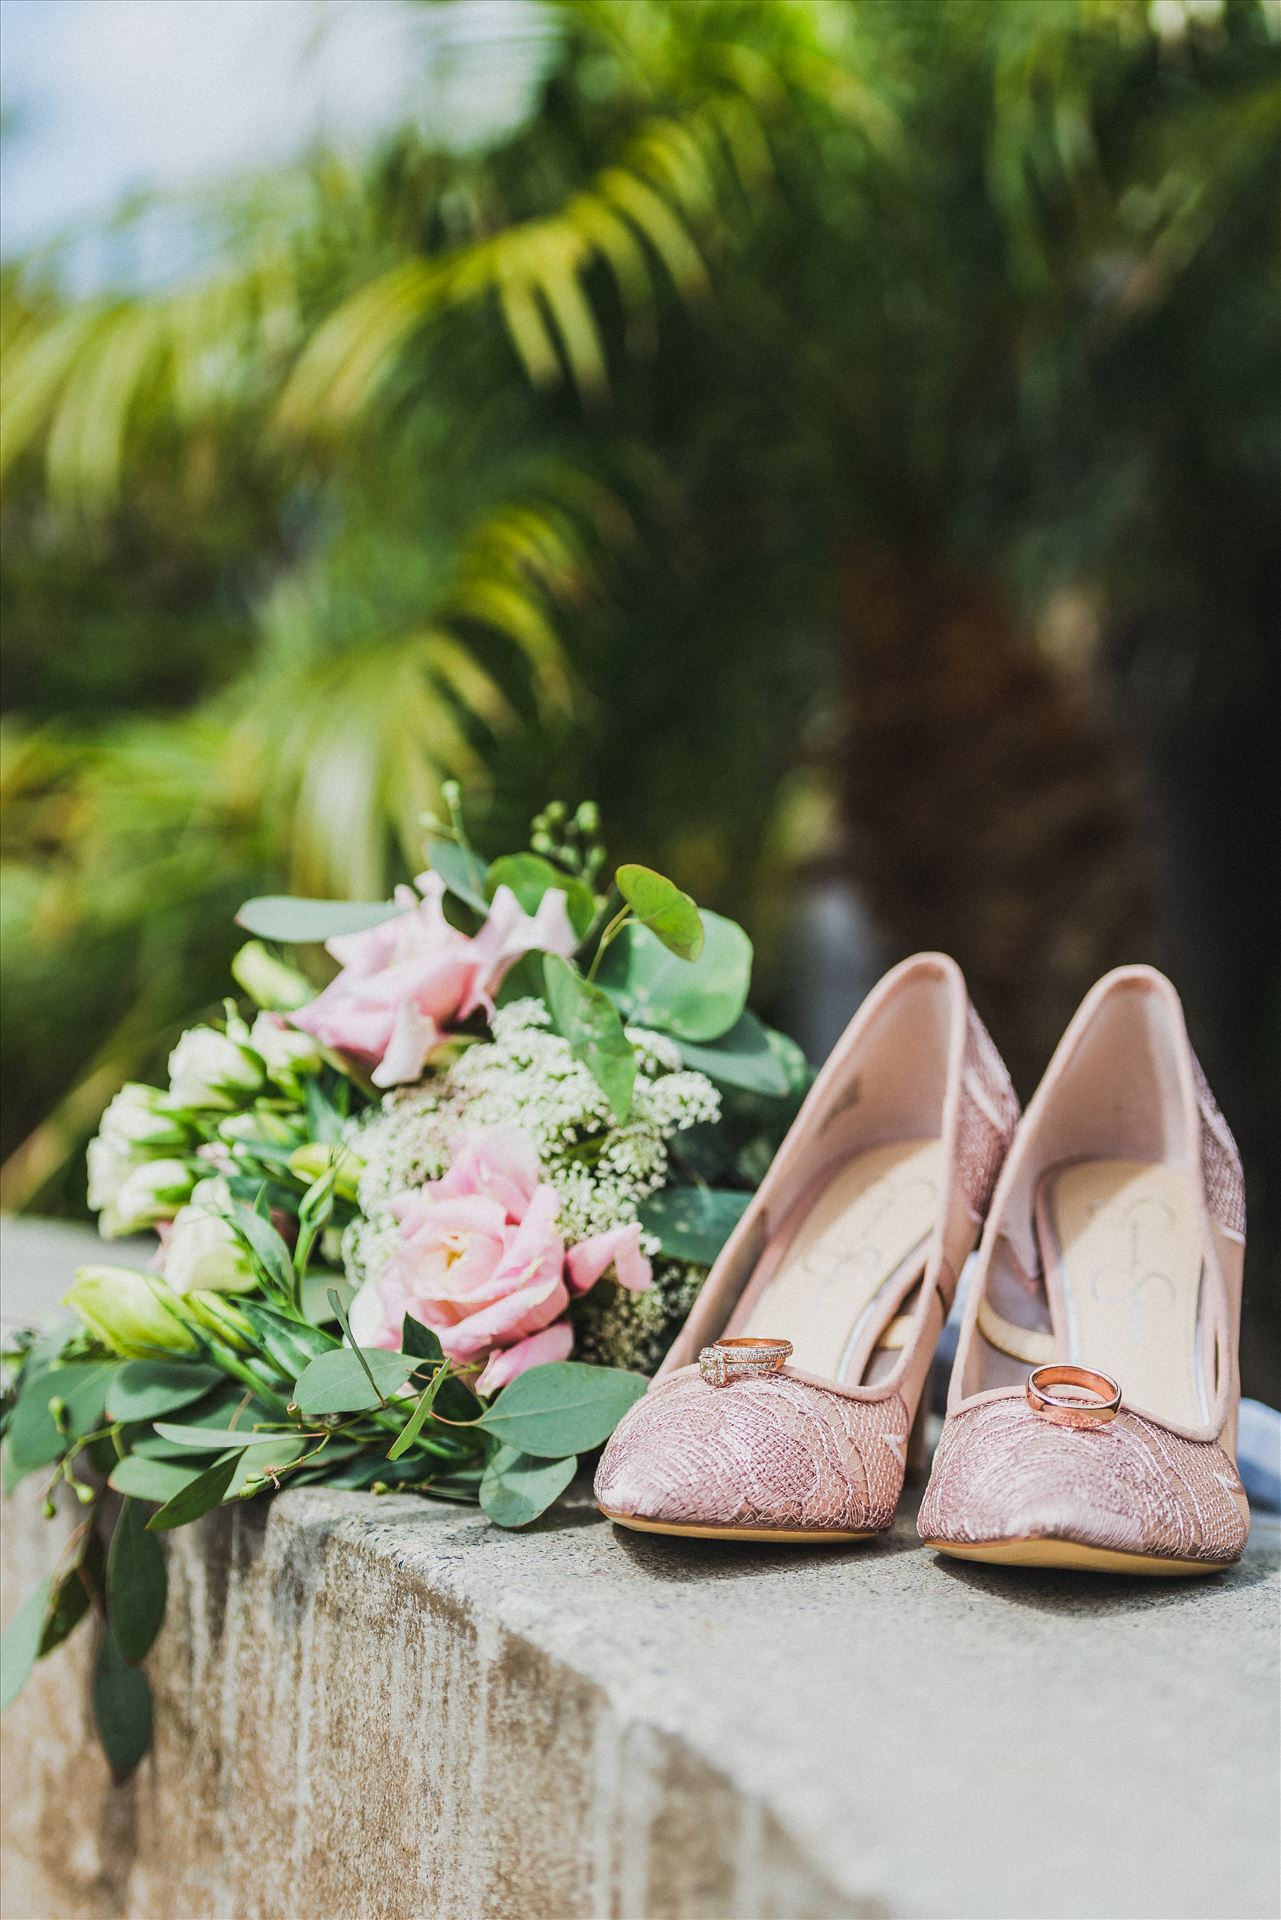 Candy and Christopher 08 - Wedding at Dolphin Bay Resort and Spa in Shell Beach, California by Sarah Williams of Mirror's Edge Photography, a San Luis Obispo County Wedding Photographer. Shoes, flowers and rings by Sarah Williams